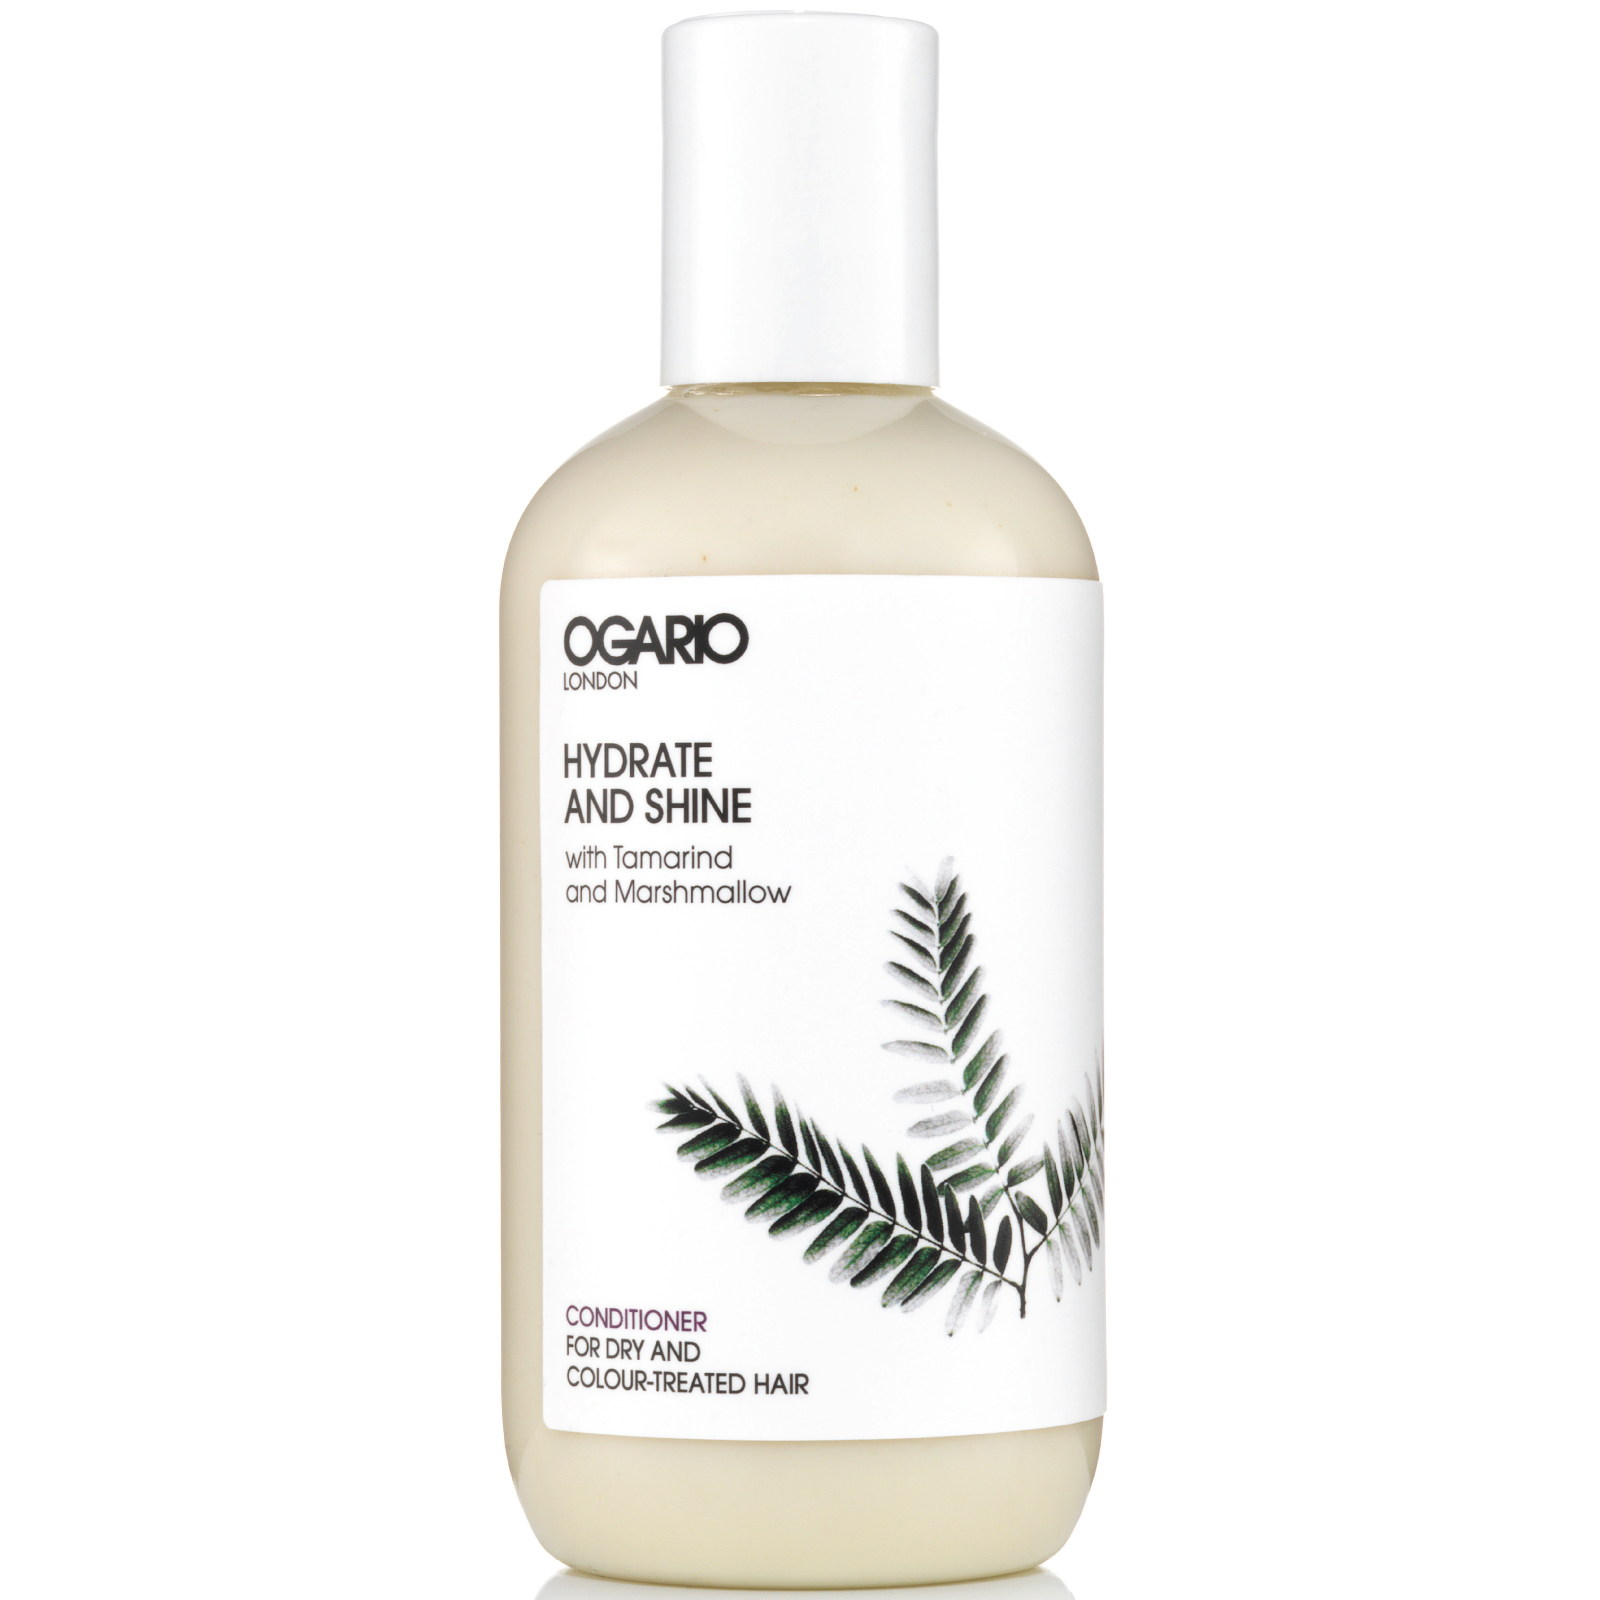 OGARIO Hydrate and Shine Conditioner; Best for adding moisture to dry curly hair